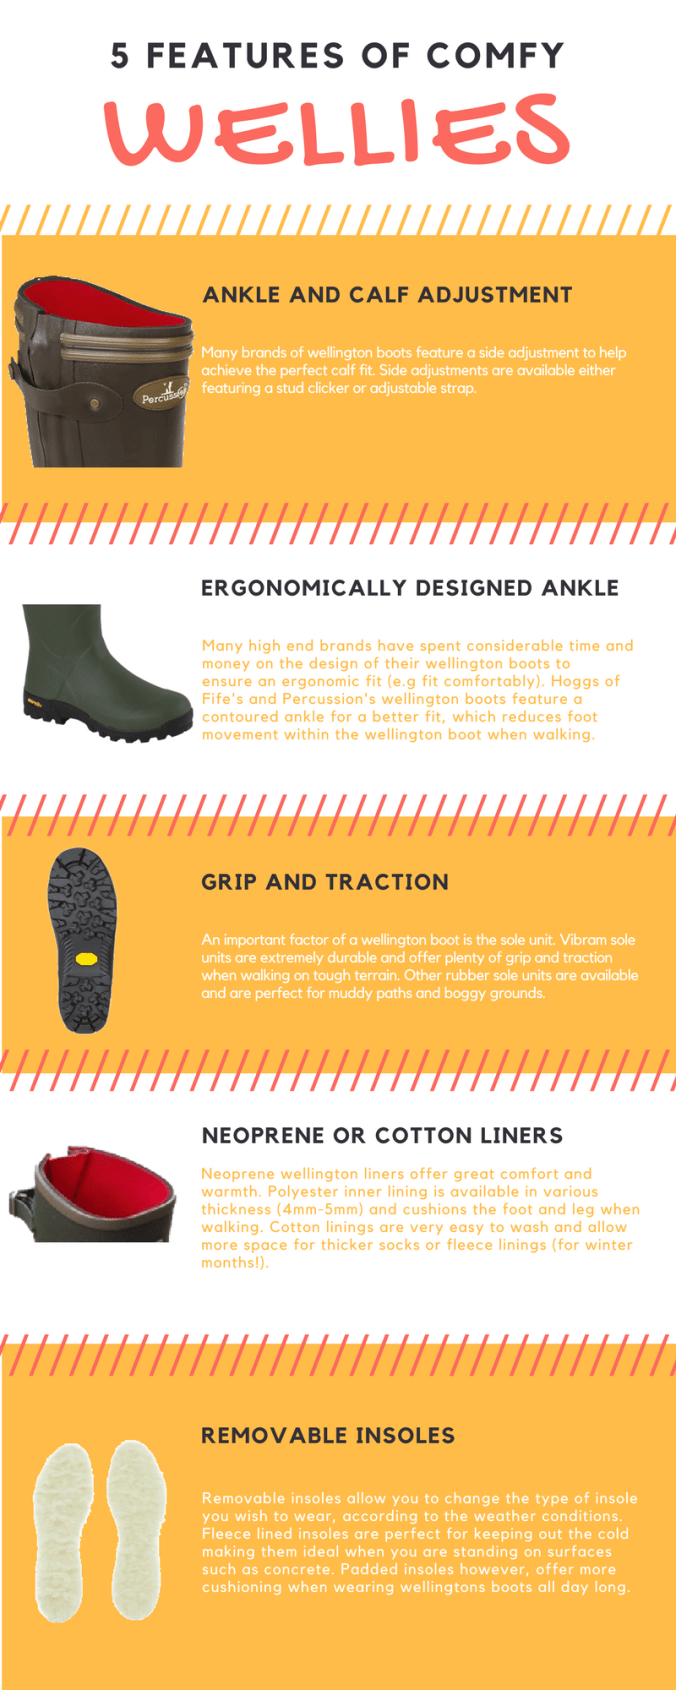 comfy wellingtons infographic